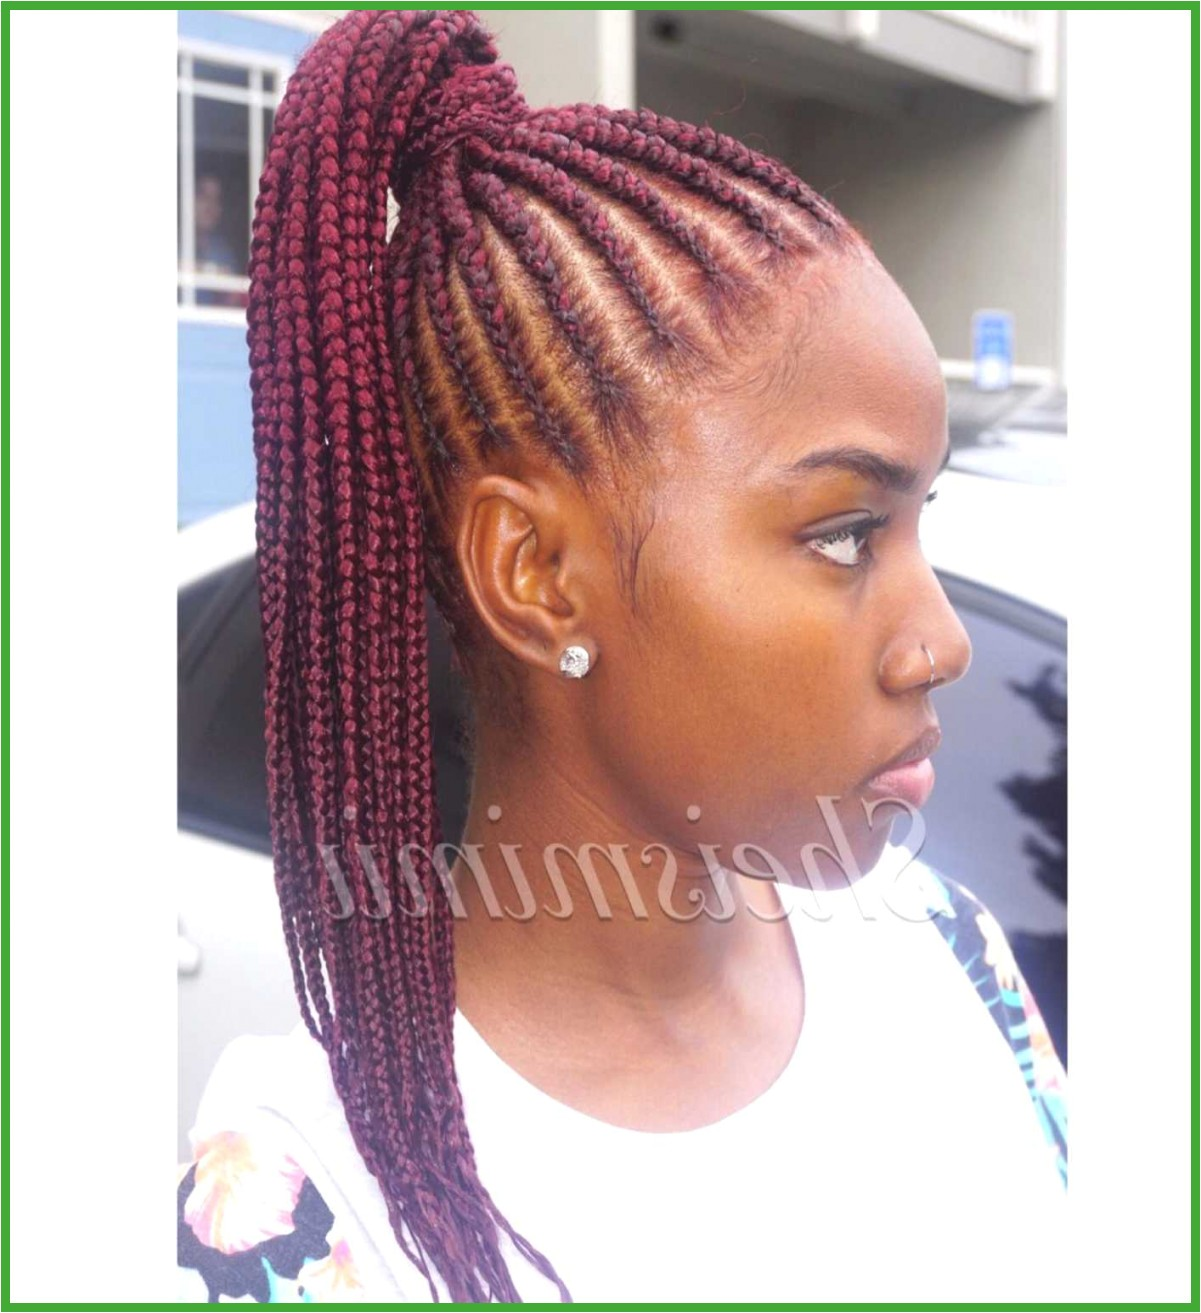 Professional Braided Hairstyles 8 Cool 3 Braid Hairstyles